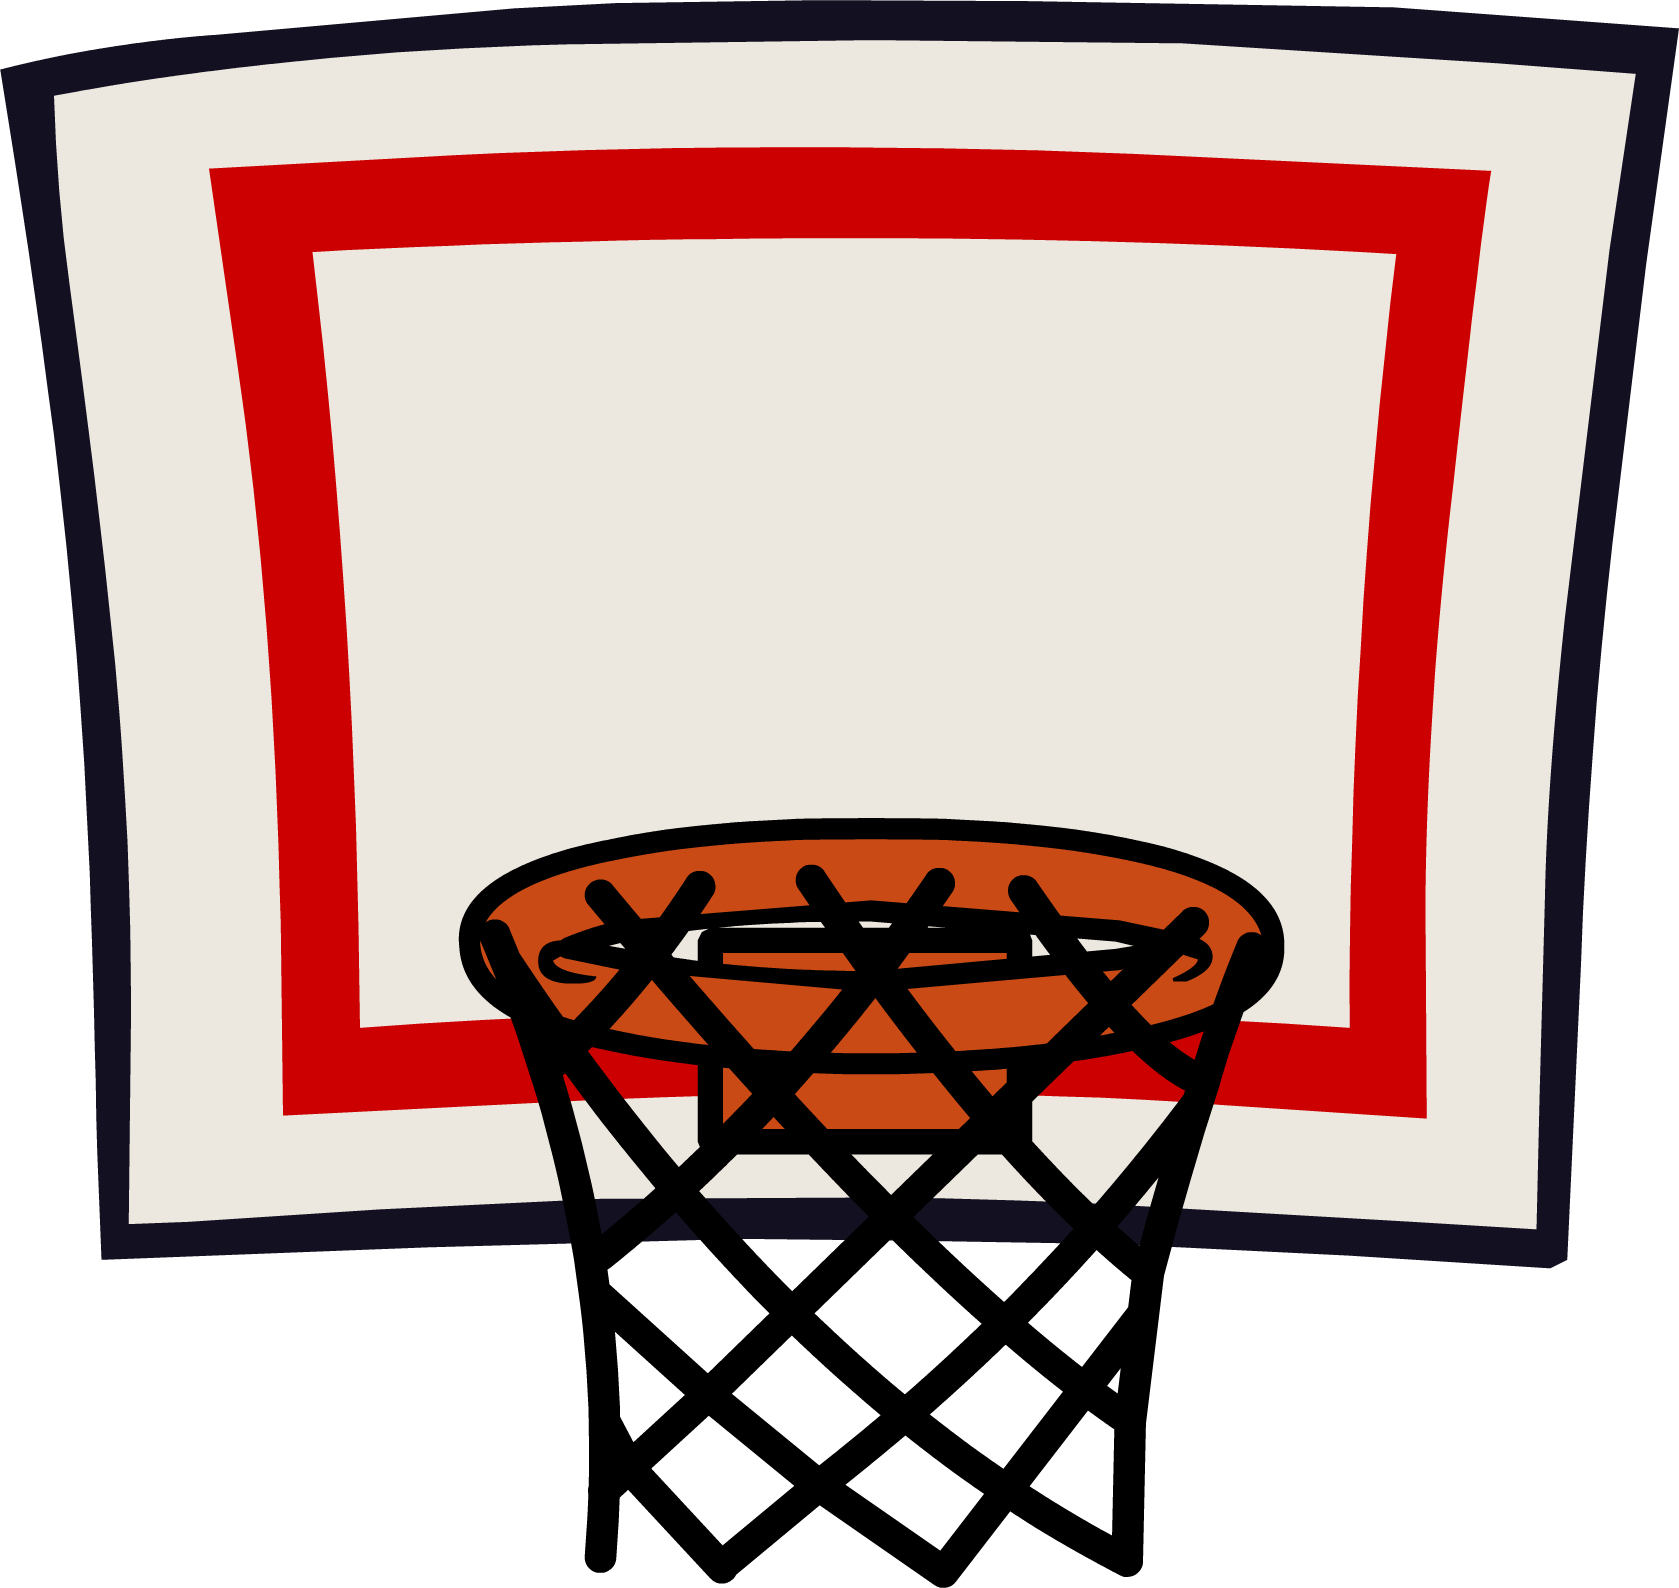 1679x1588 Rim Basketball Clipart, Explore Pictures